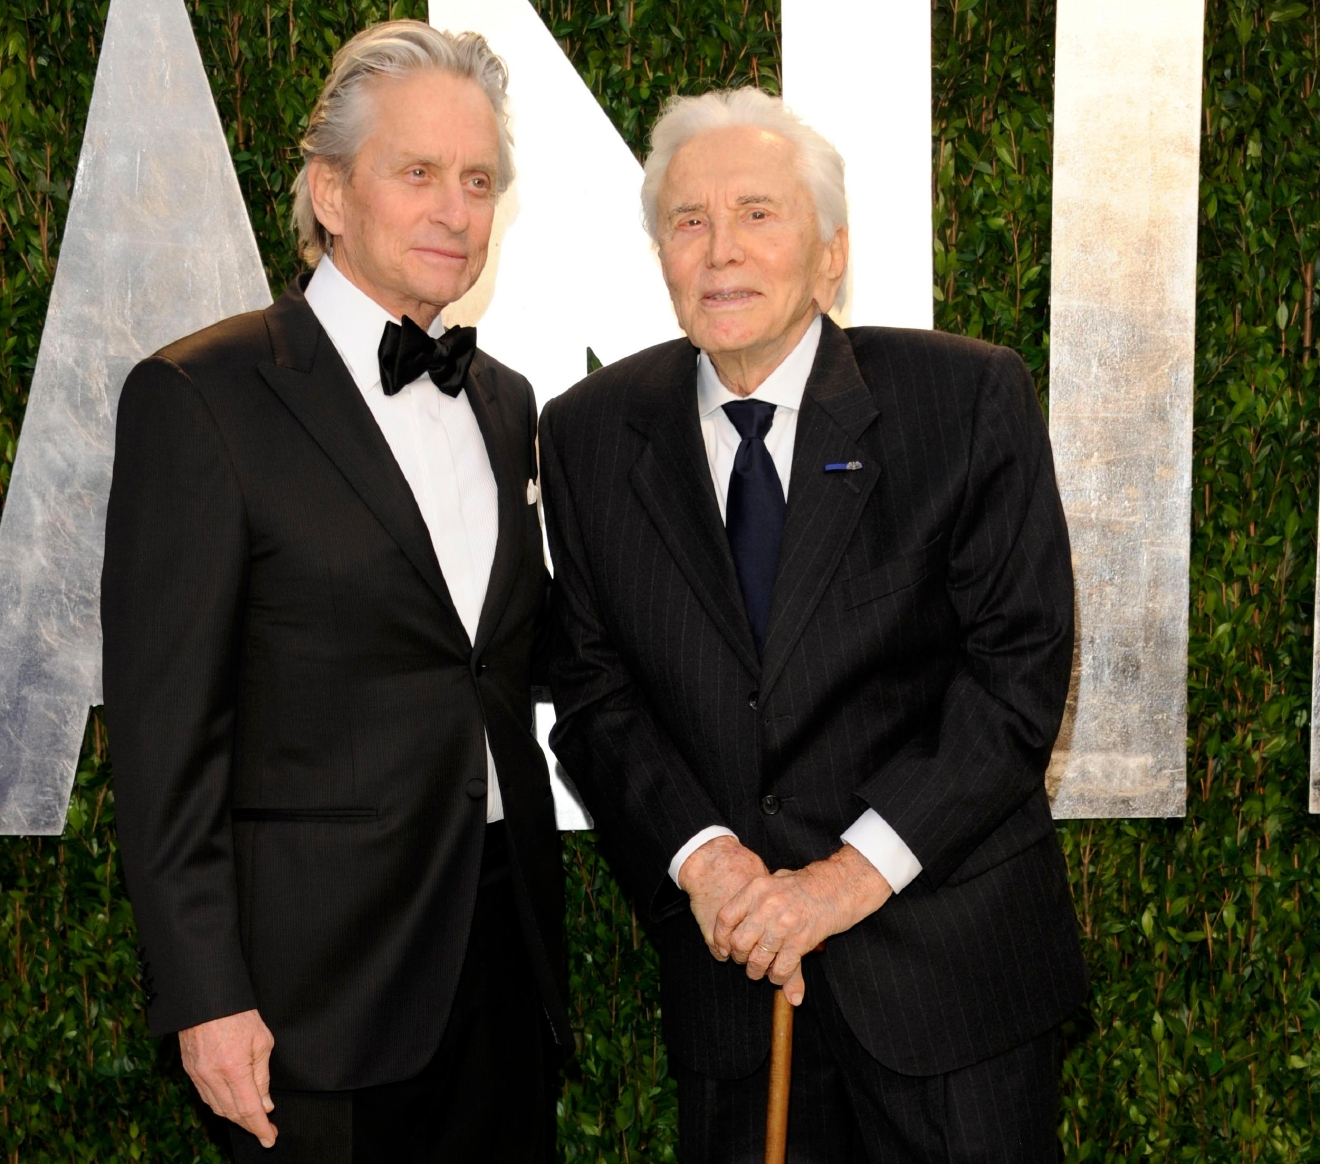 FILE -- In this Feb. 26, 2012, file photo, Michael Douglas, left, and Kirk Douglas arrive at the Vanity Fair Oscar party in West Hollywood, Calif.  (AP Photo/Evan Agostini, File)